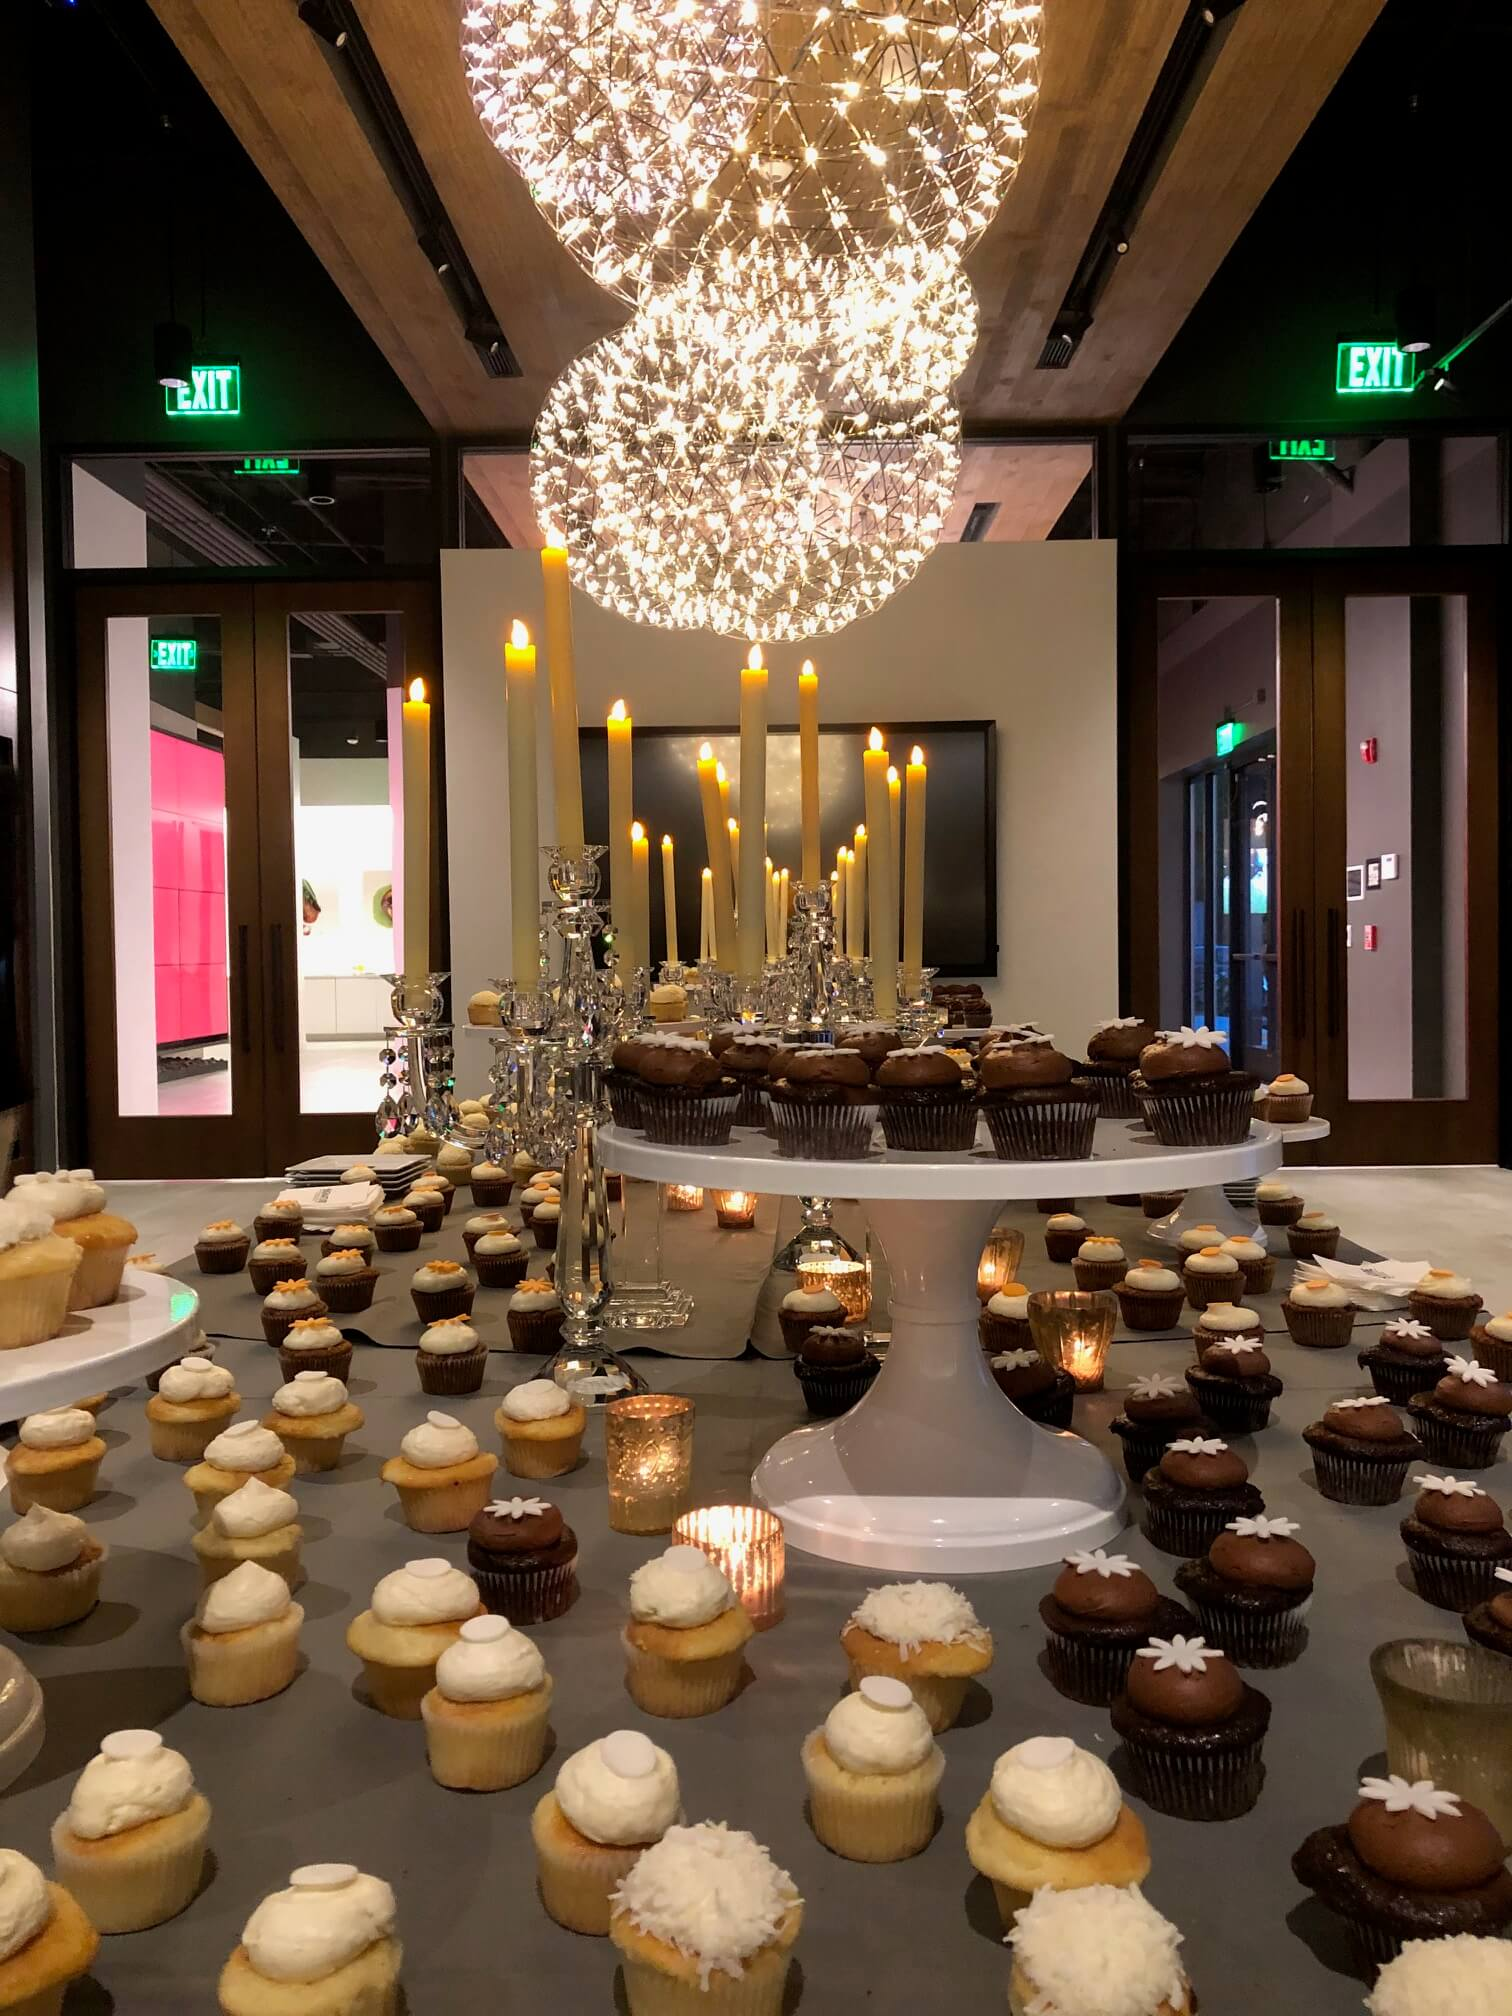 Cupcake table display after dinner one night at the SKS Appliances Experience and Design Center, Napa